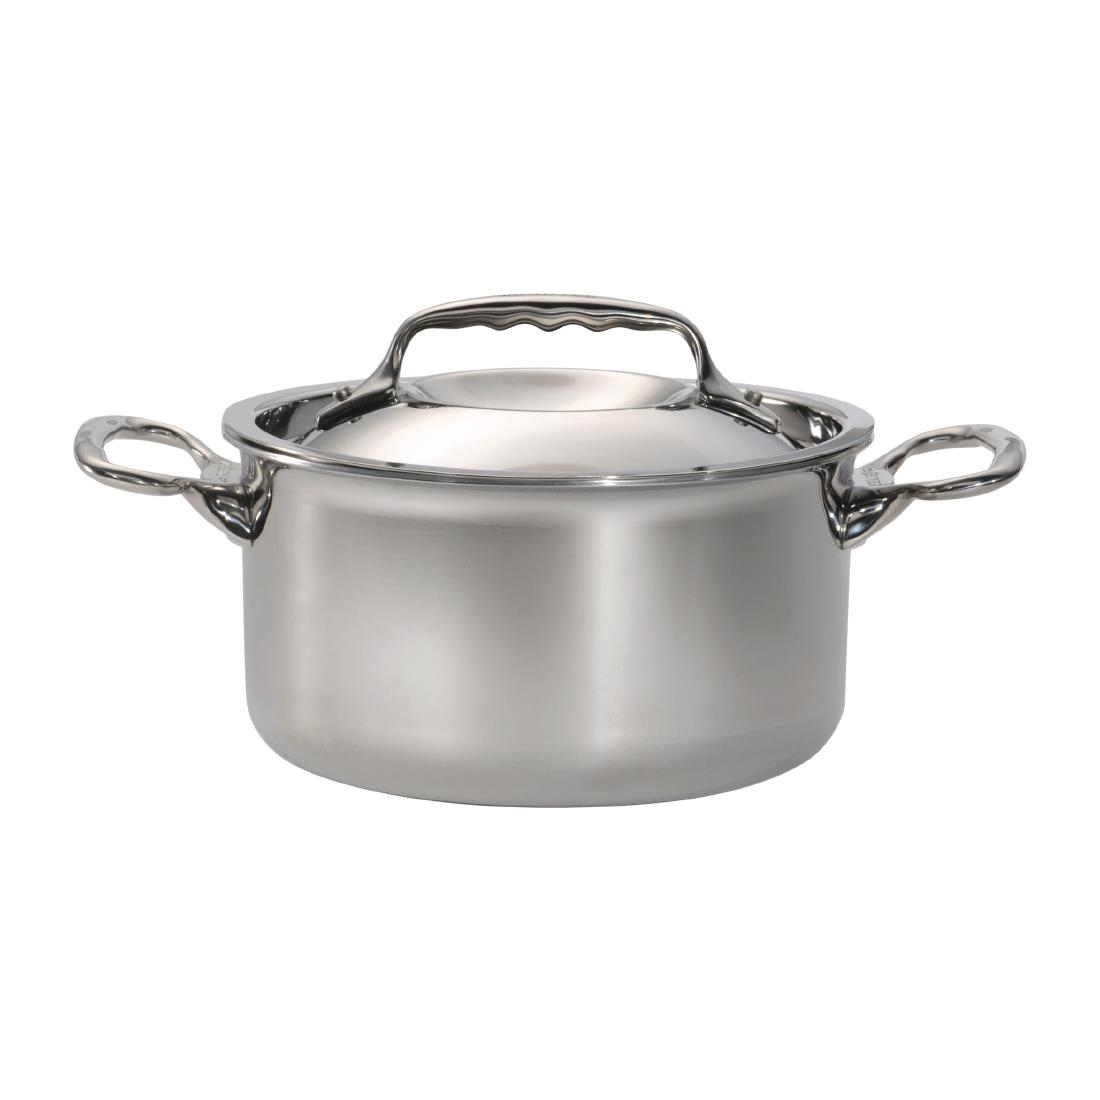 Image of DeBuyer Affinity Stainless Steel Stew Pan With Lid 28 cm